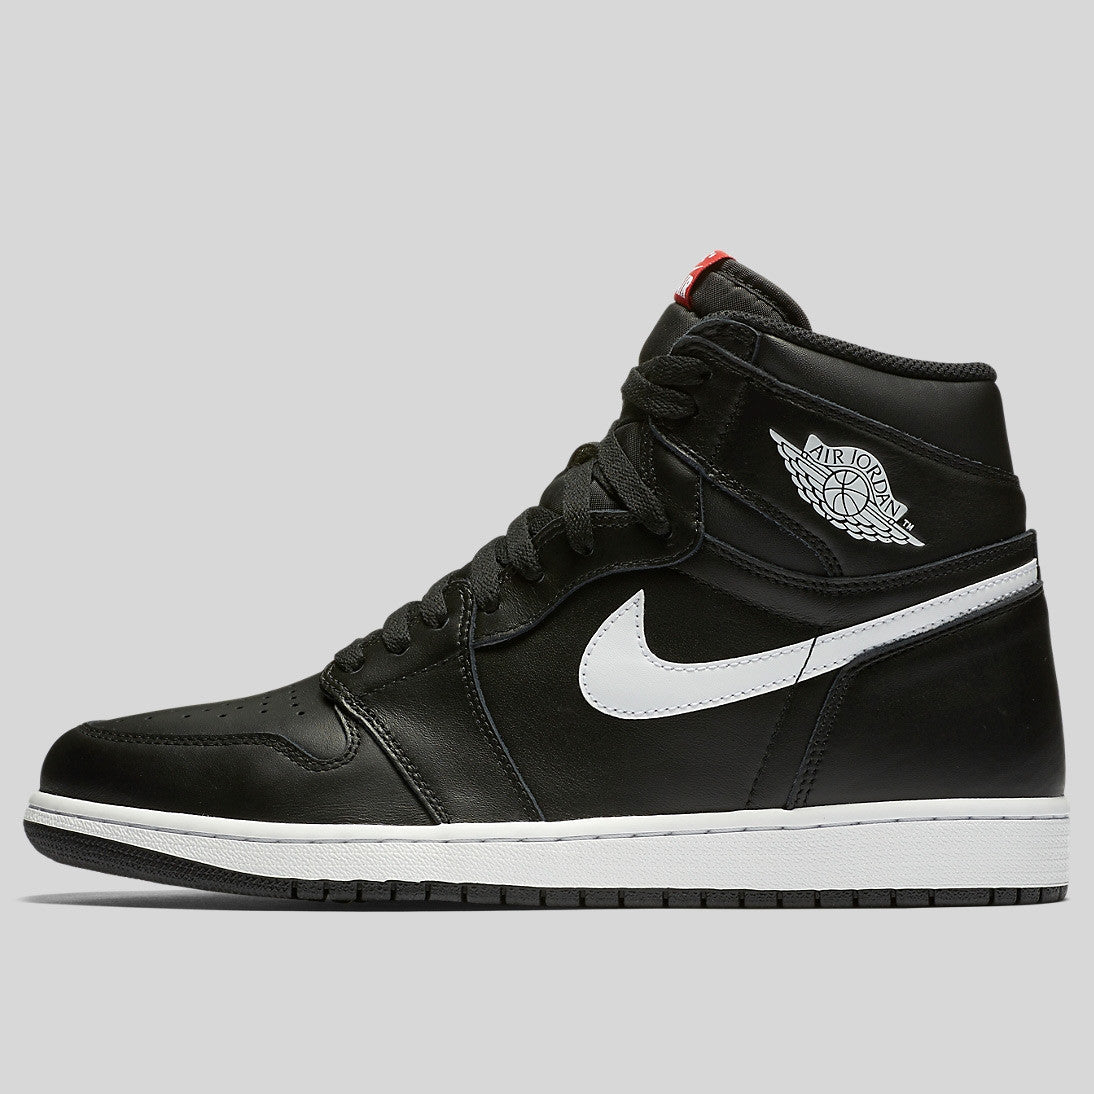 the latest 0b6b7 488e2 Nike Air Jordan 1 Retro High OG Yin Yang Black (555088-011)   KIX-FILES